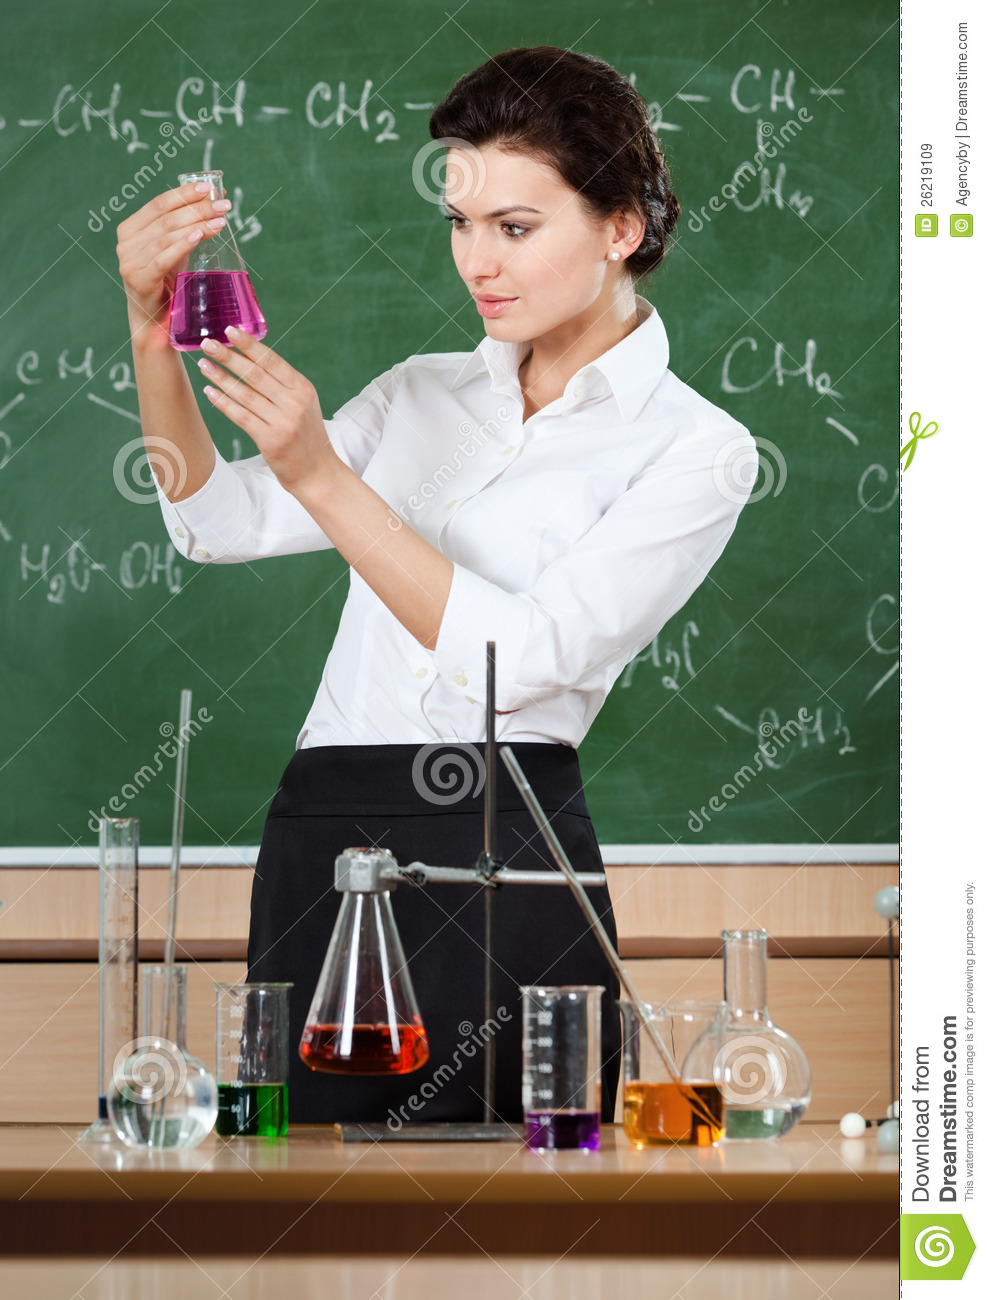 smiley chemistry teacher examines conical flask royalty